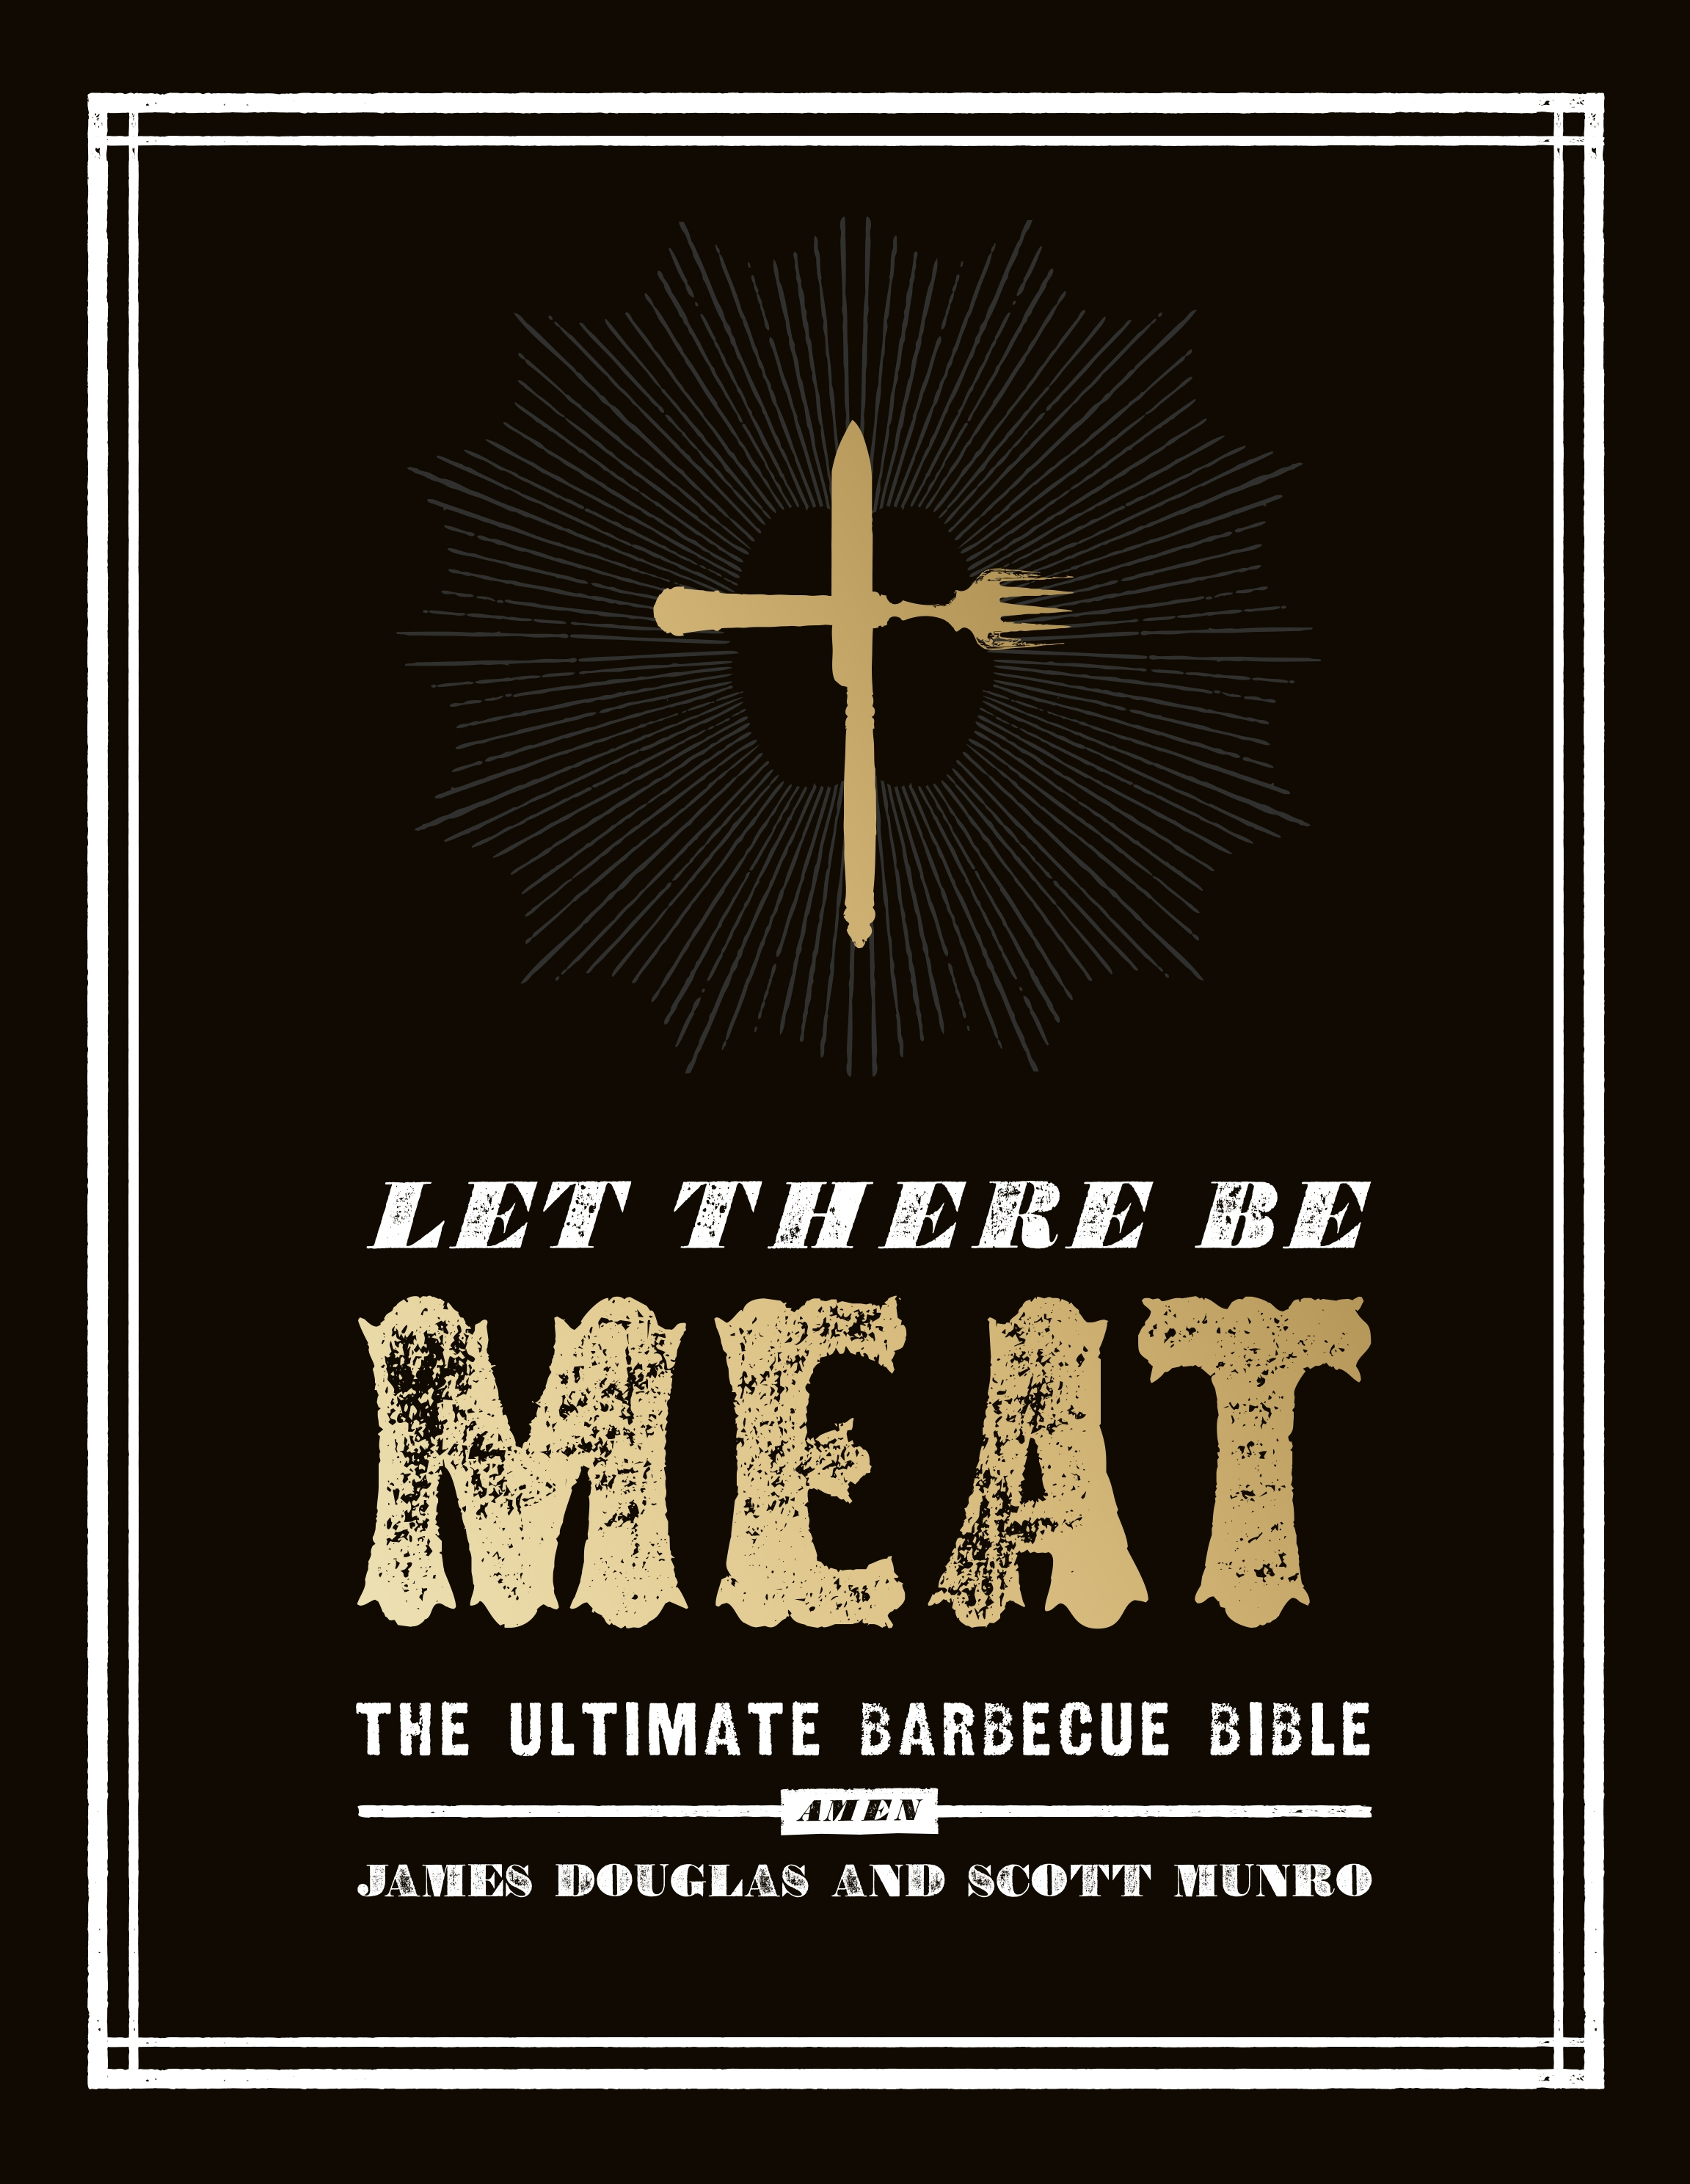 Let There Be Meat: The Ultimate Barbecue Bible